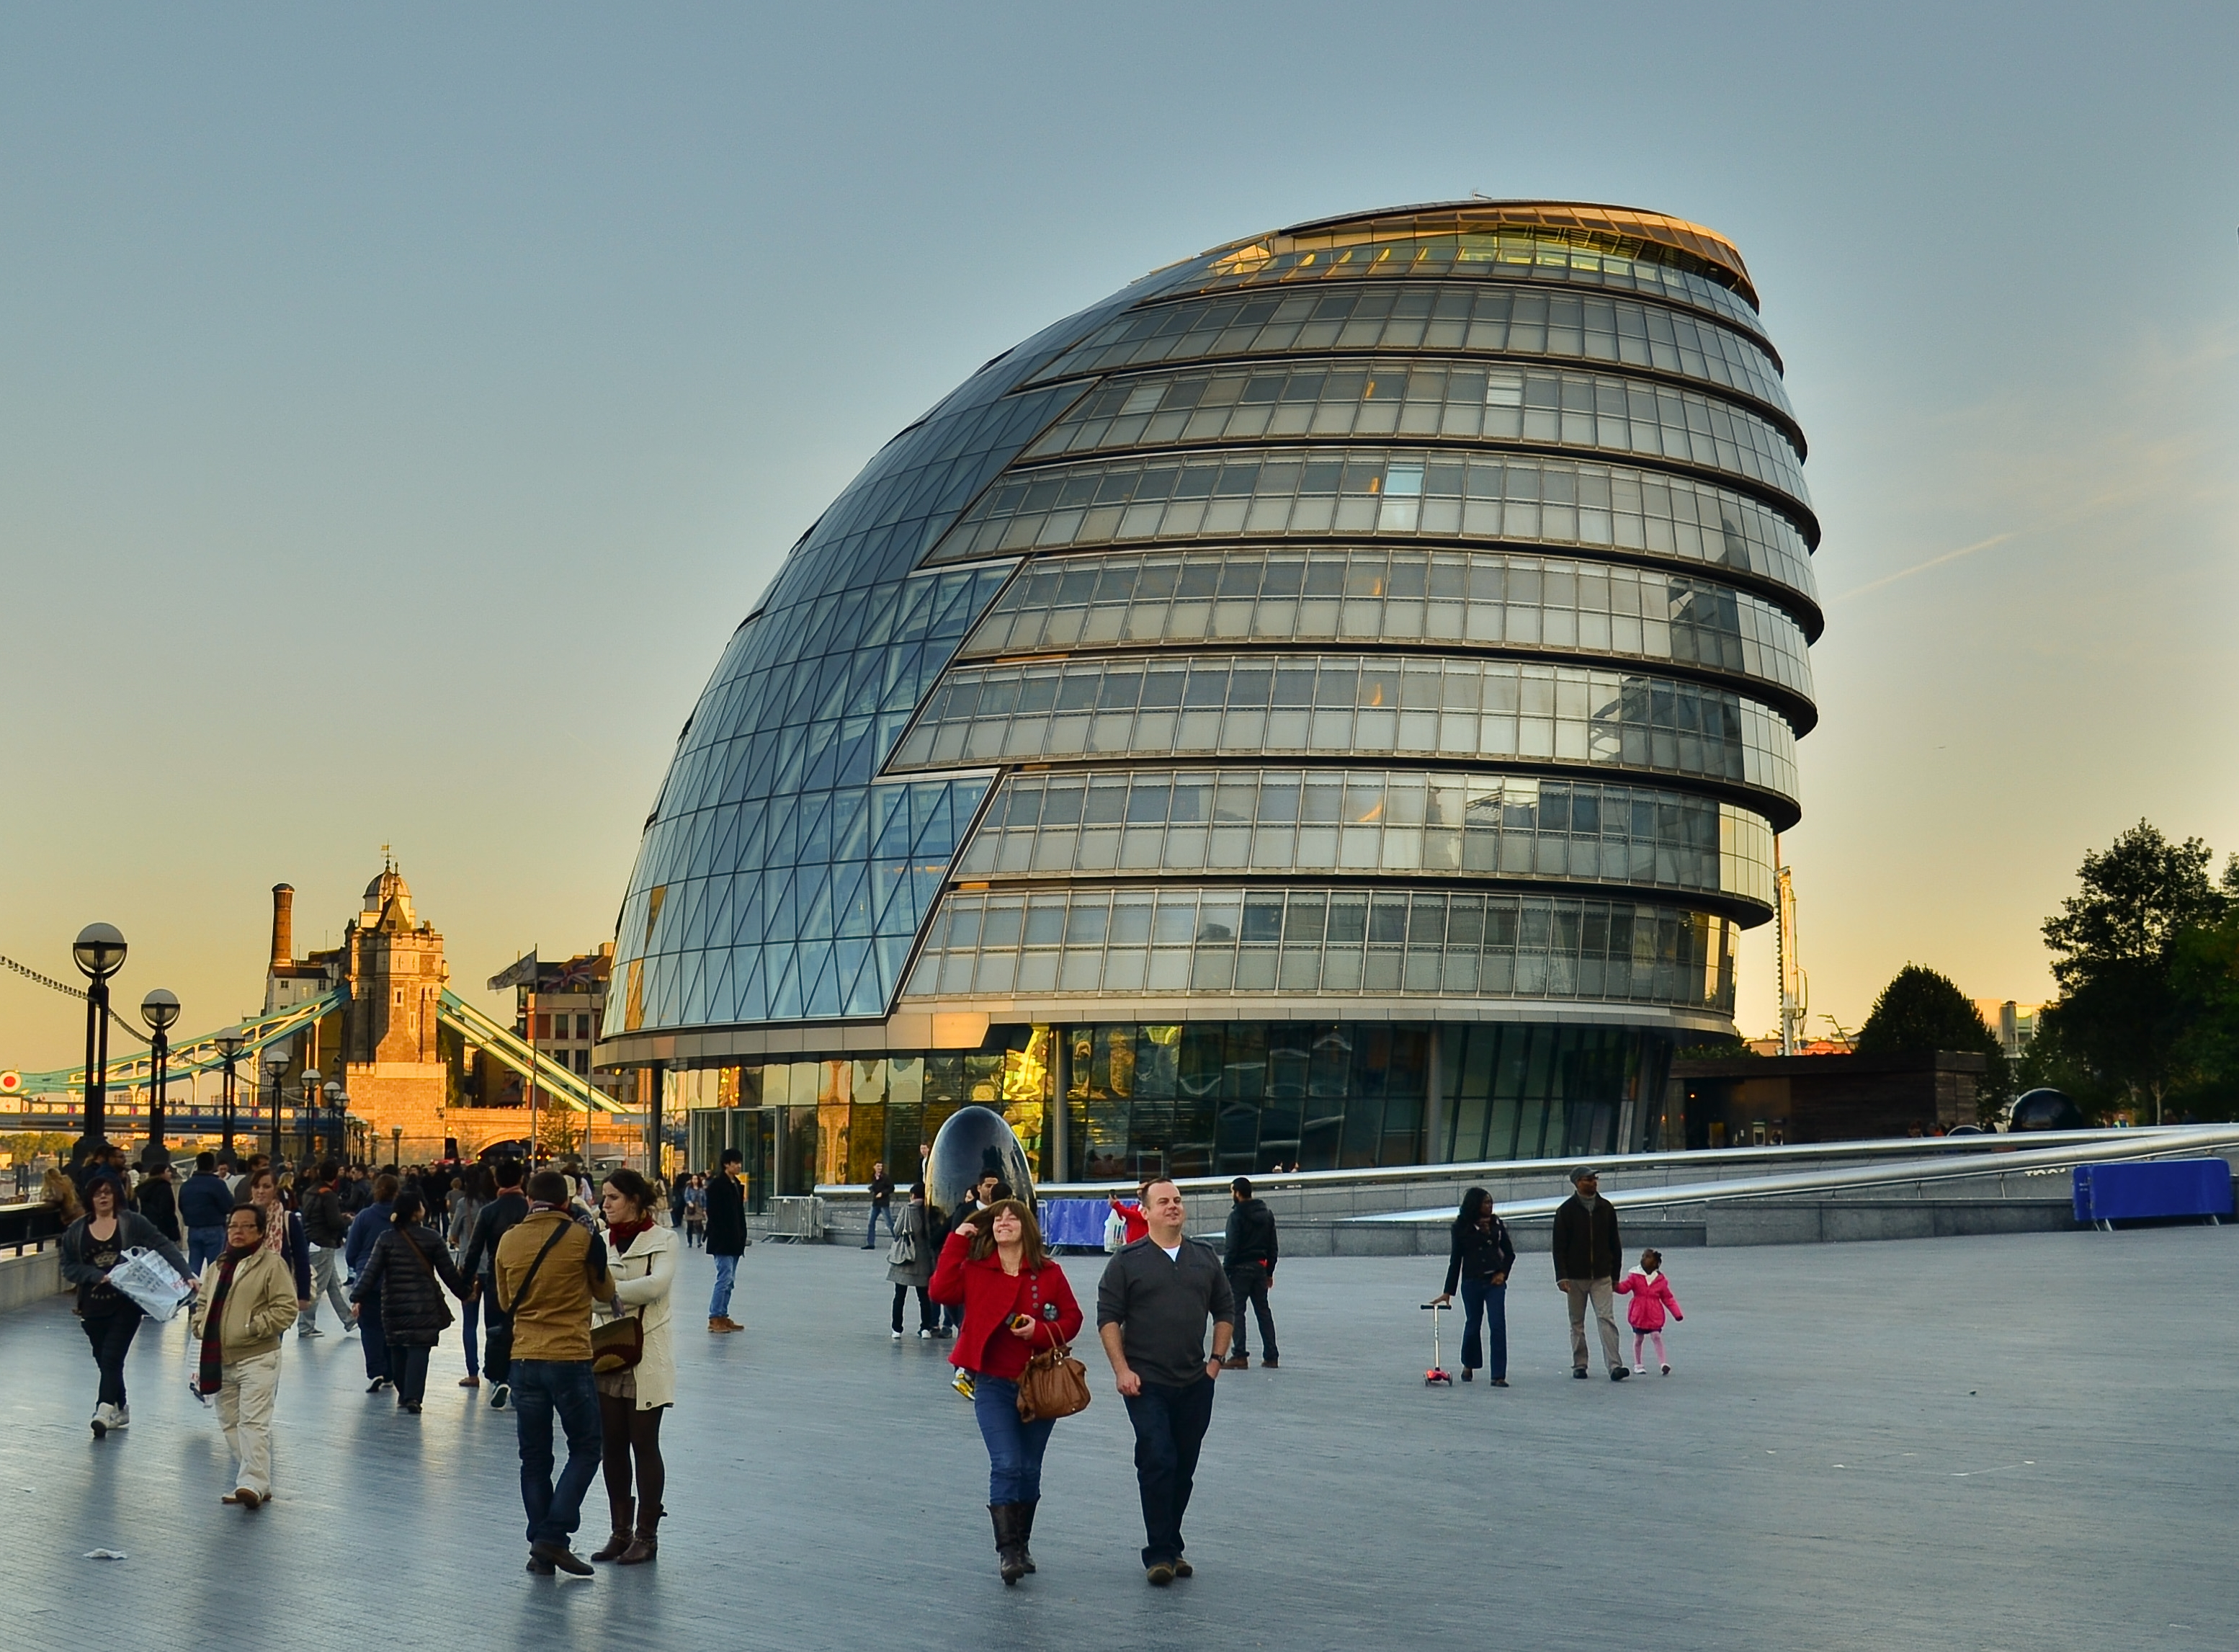 Londoners support restrictions on the construction of high-rise buildings 33